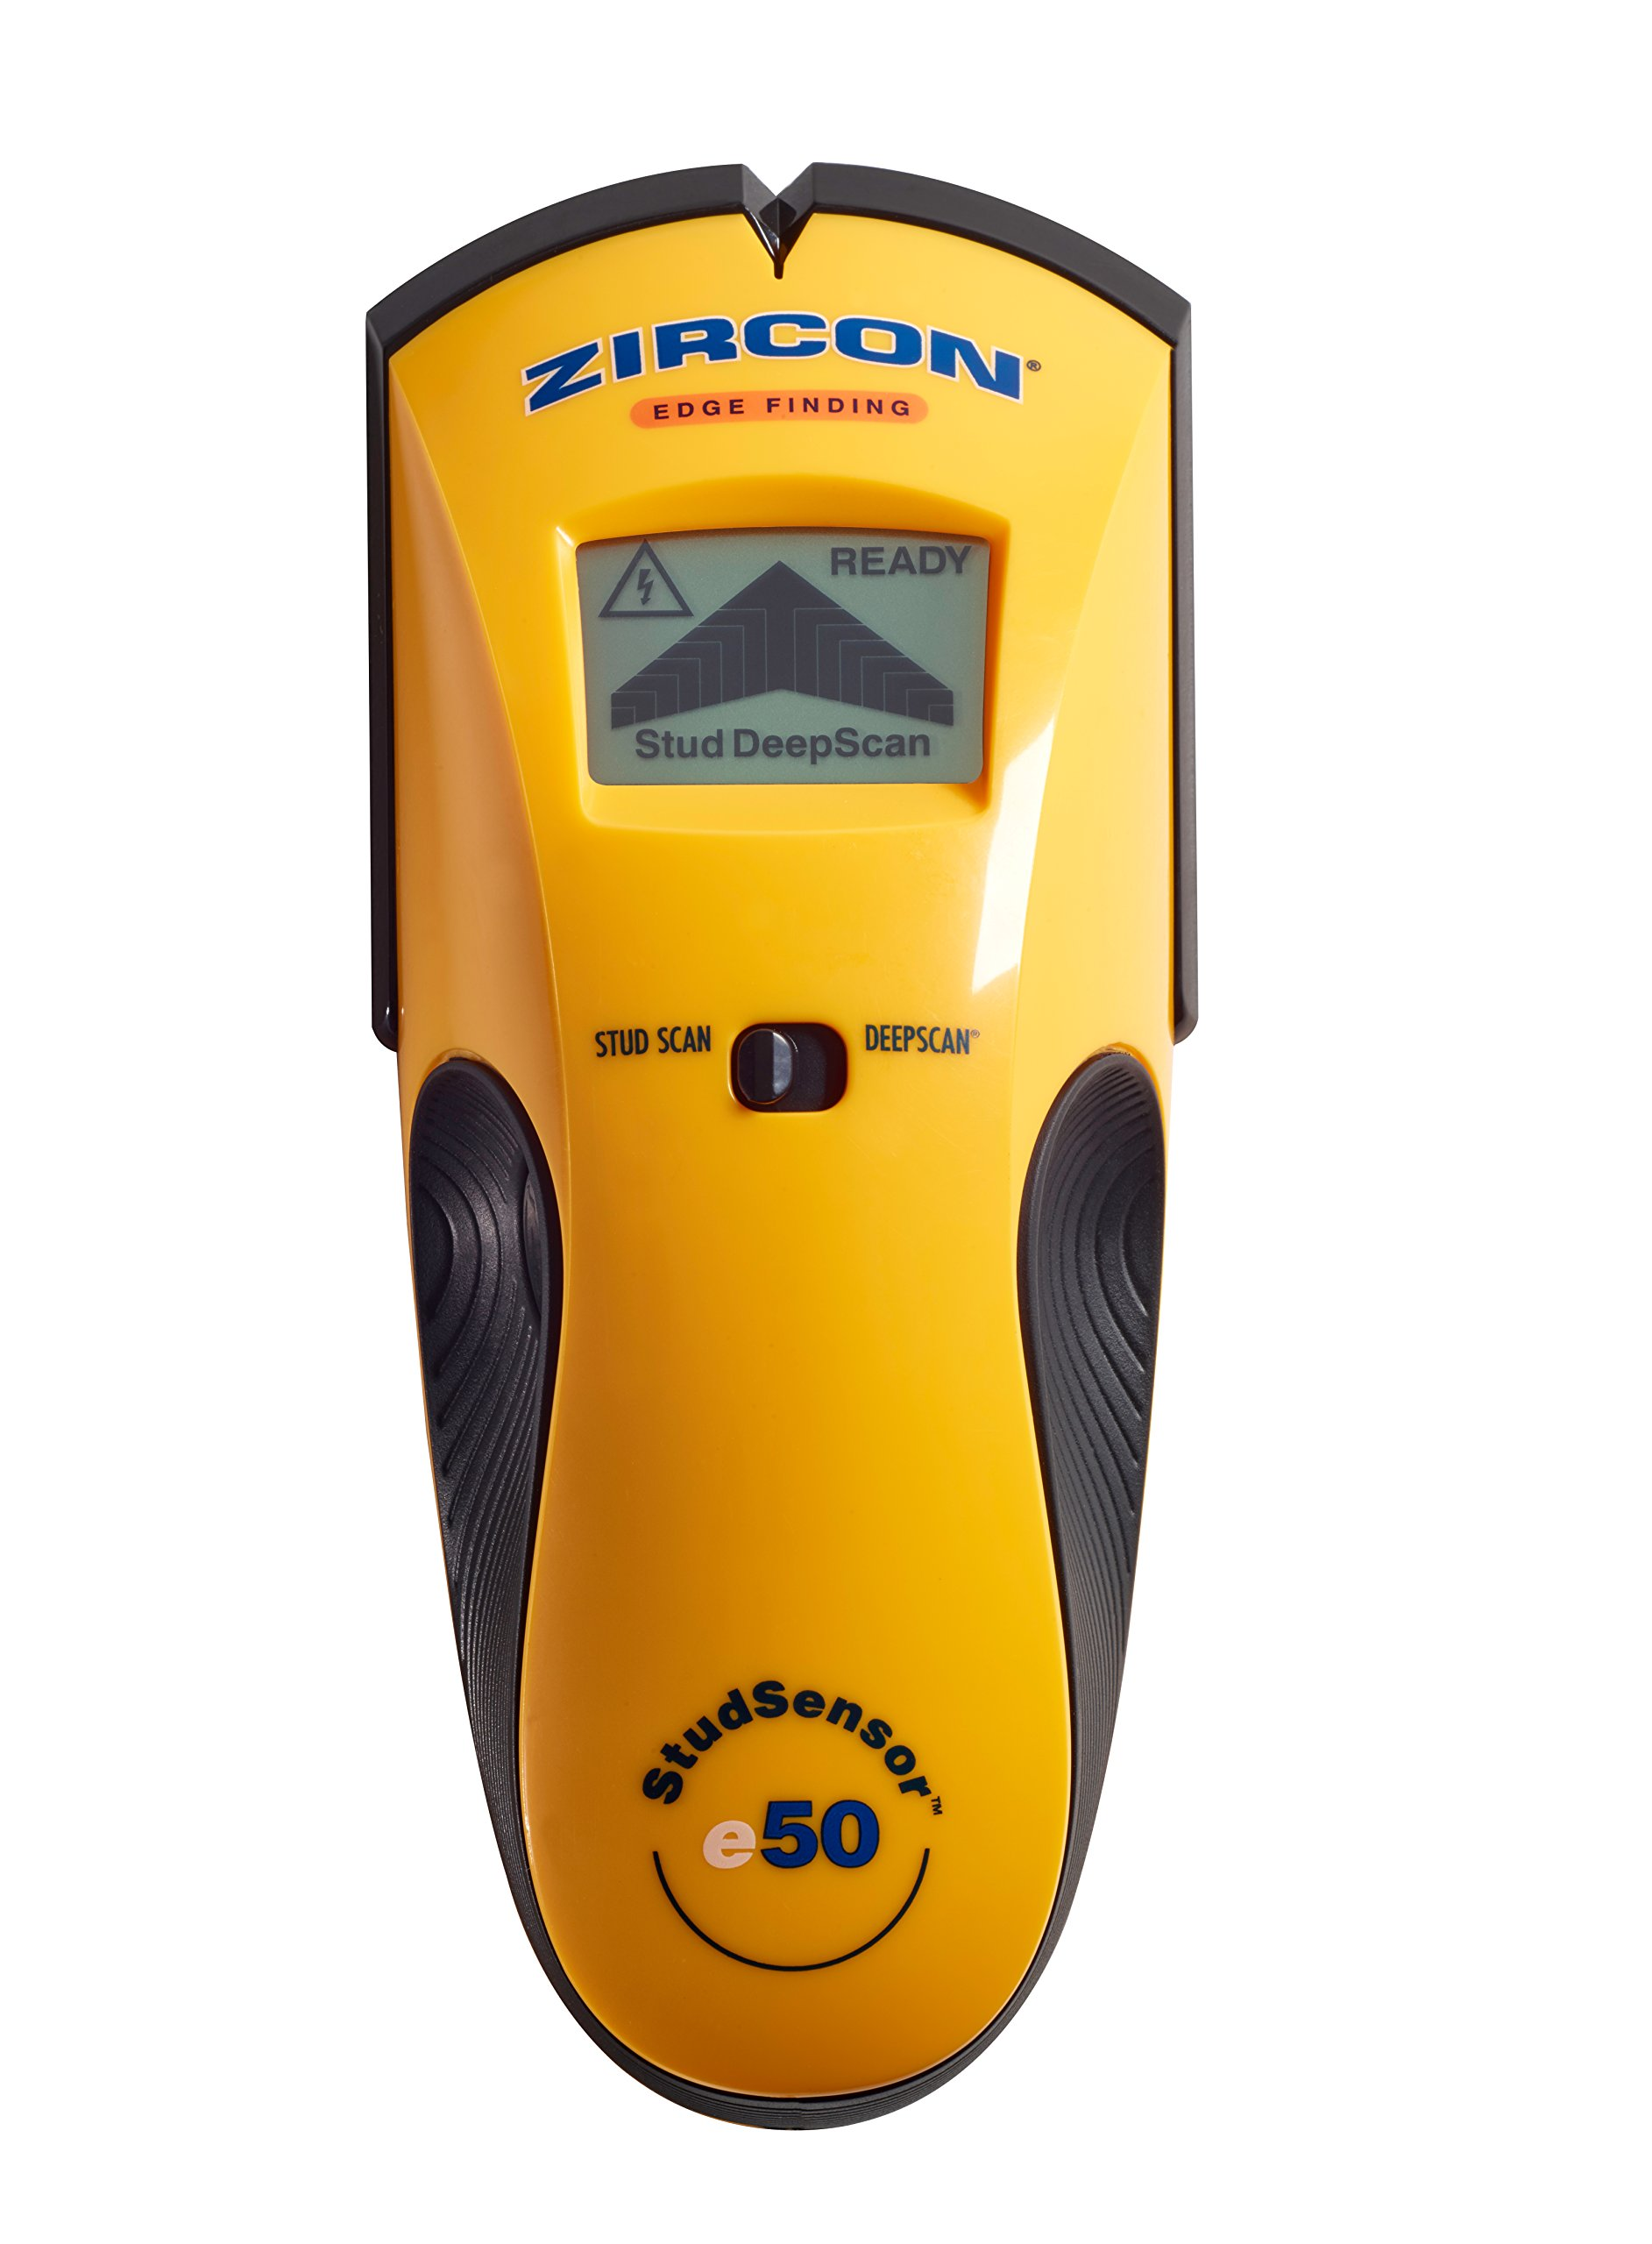 Zircon StudSensor e50 Electronic Wall Scanner / Edge Finding Stud Finder / Live AC WireWarning Detection by Zircon